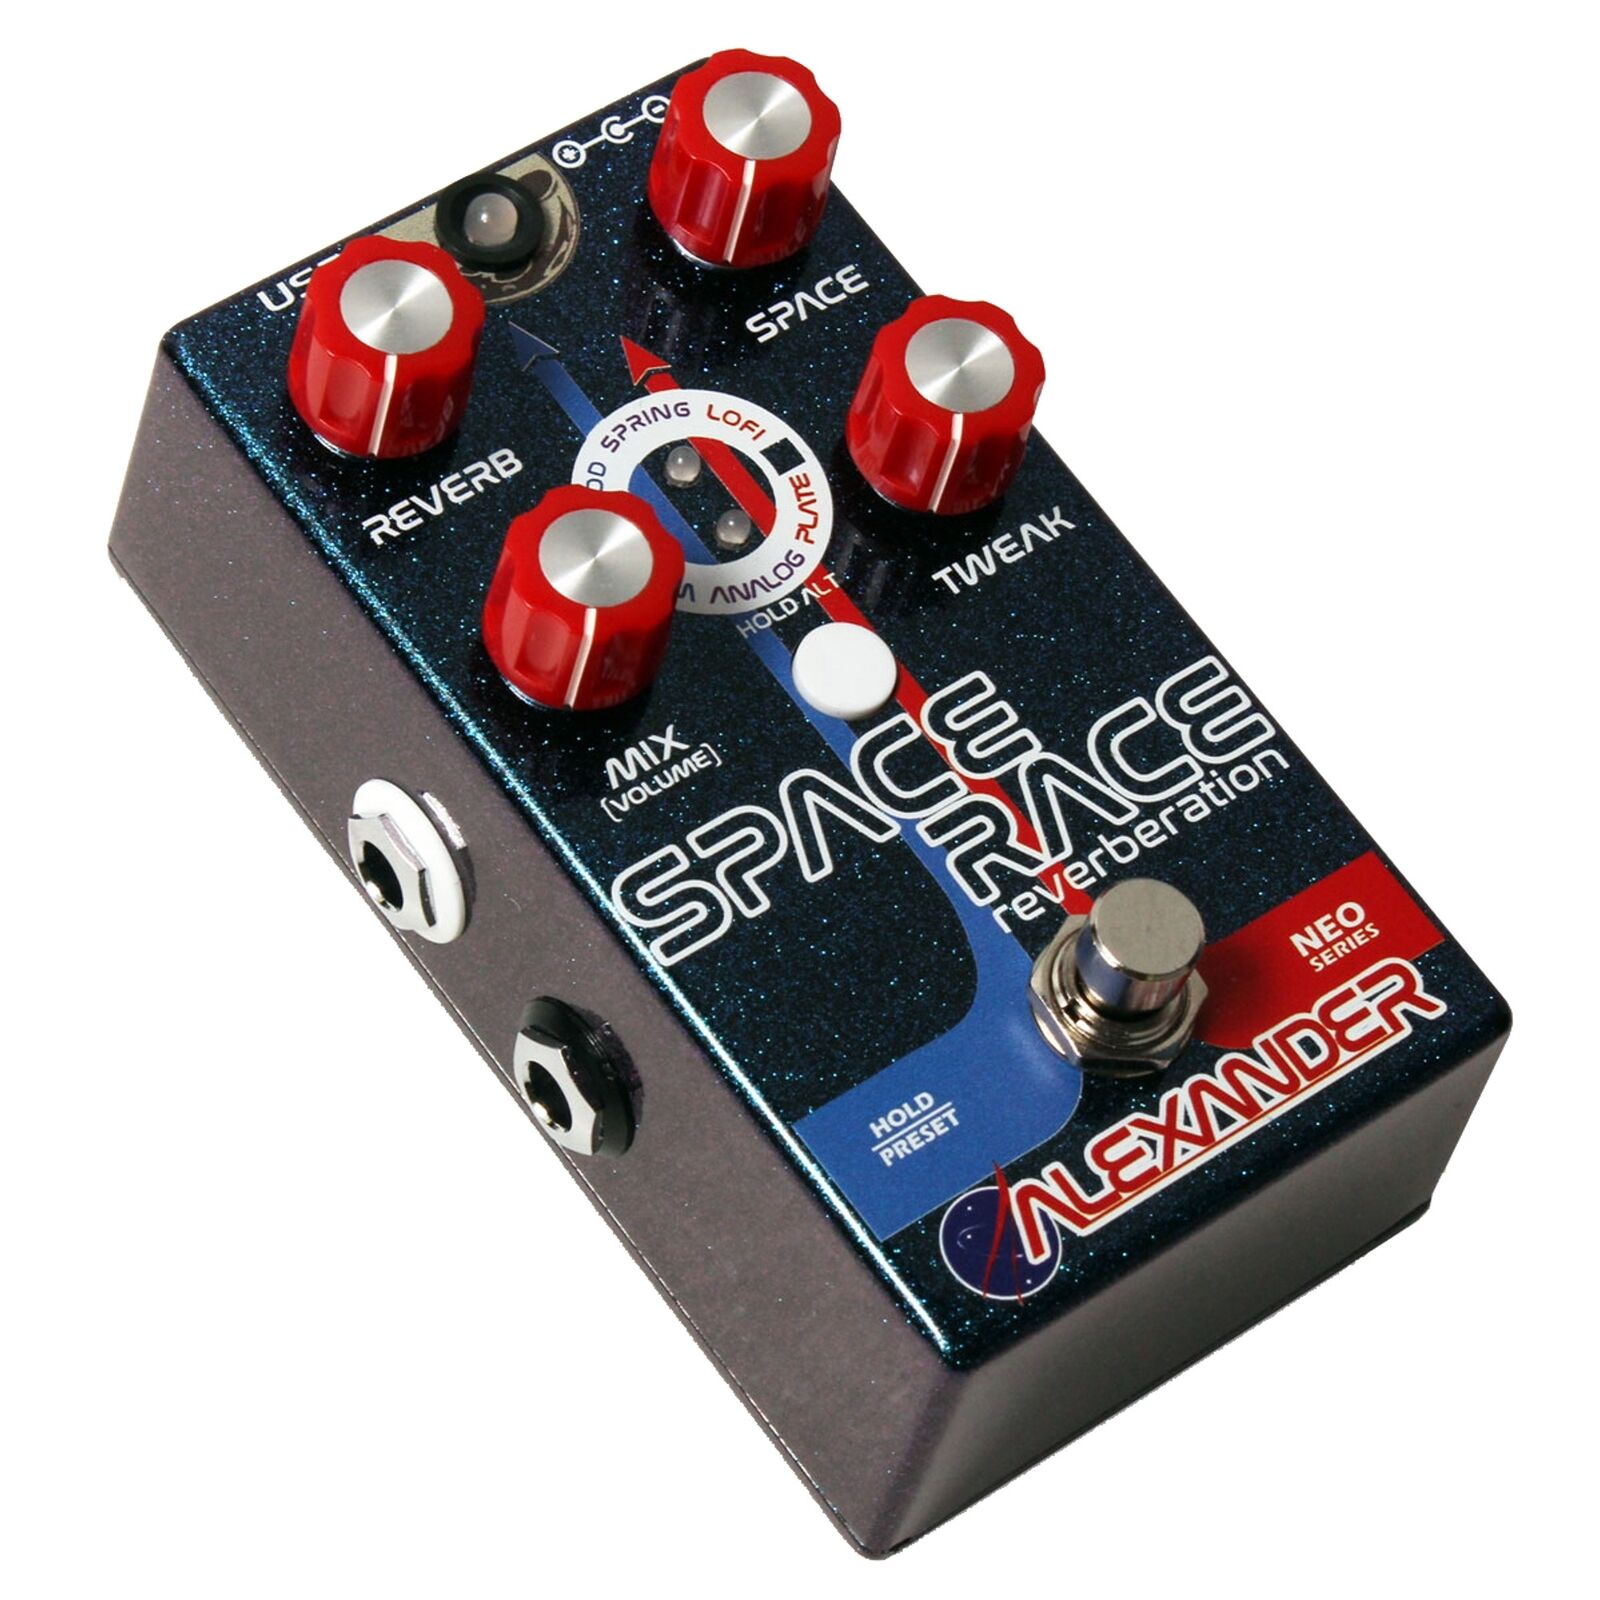 Alexander Space Race Reverberation Reverb Guitar Effects Pedal Stompbox